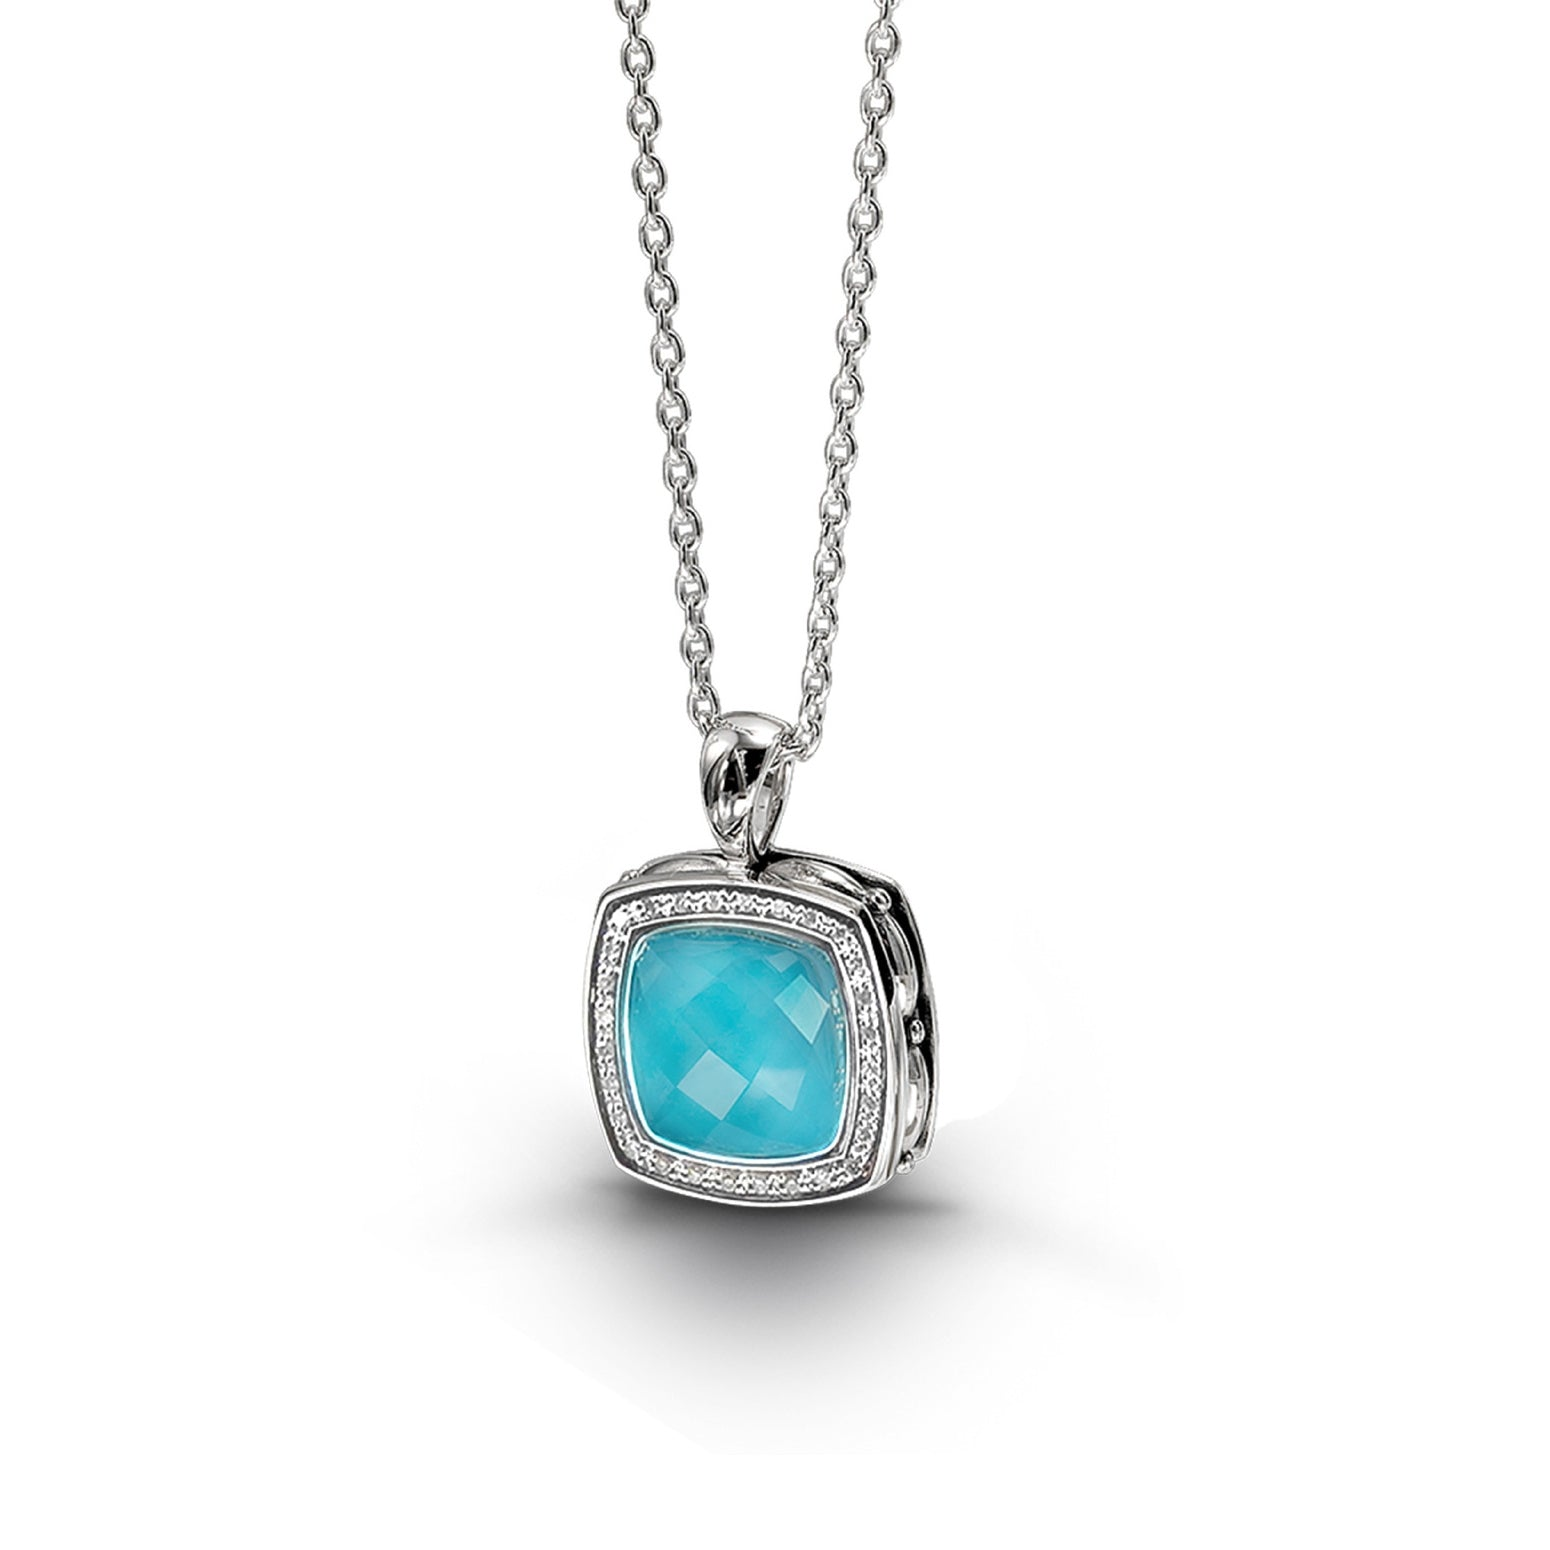 Turquoise and White Quartz Pendant with Diamonds, Sterling Silver